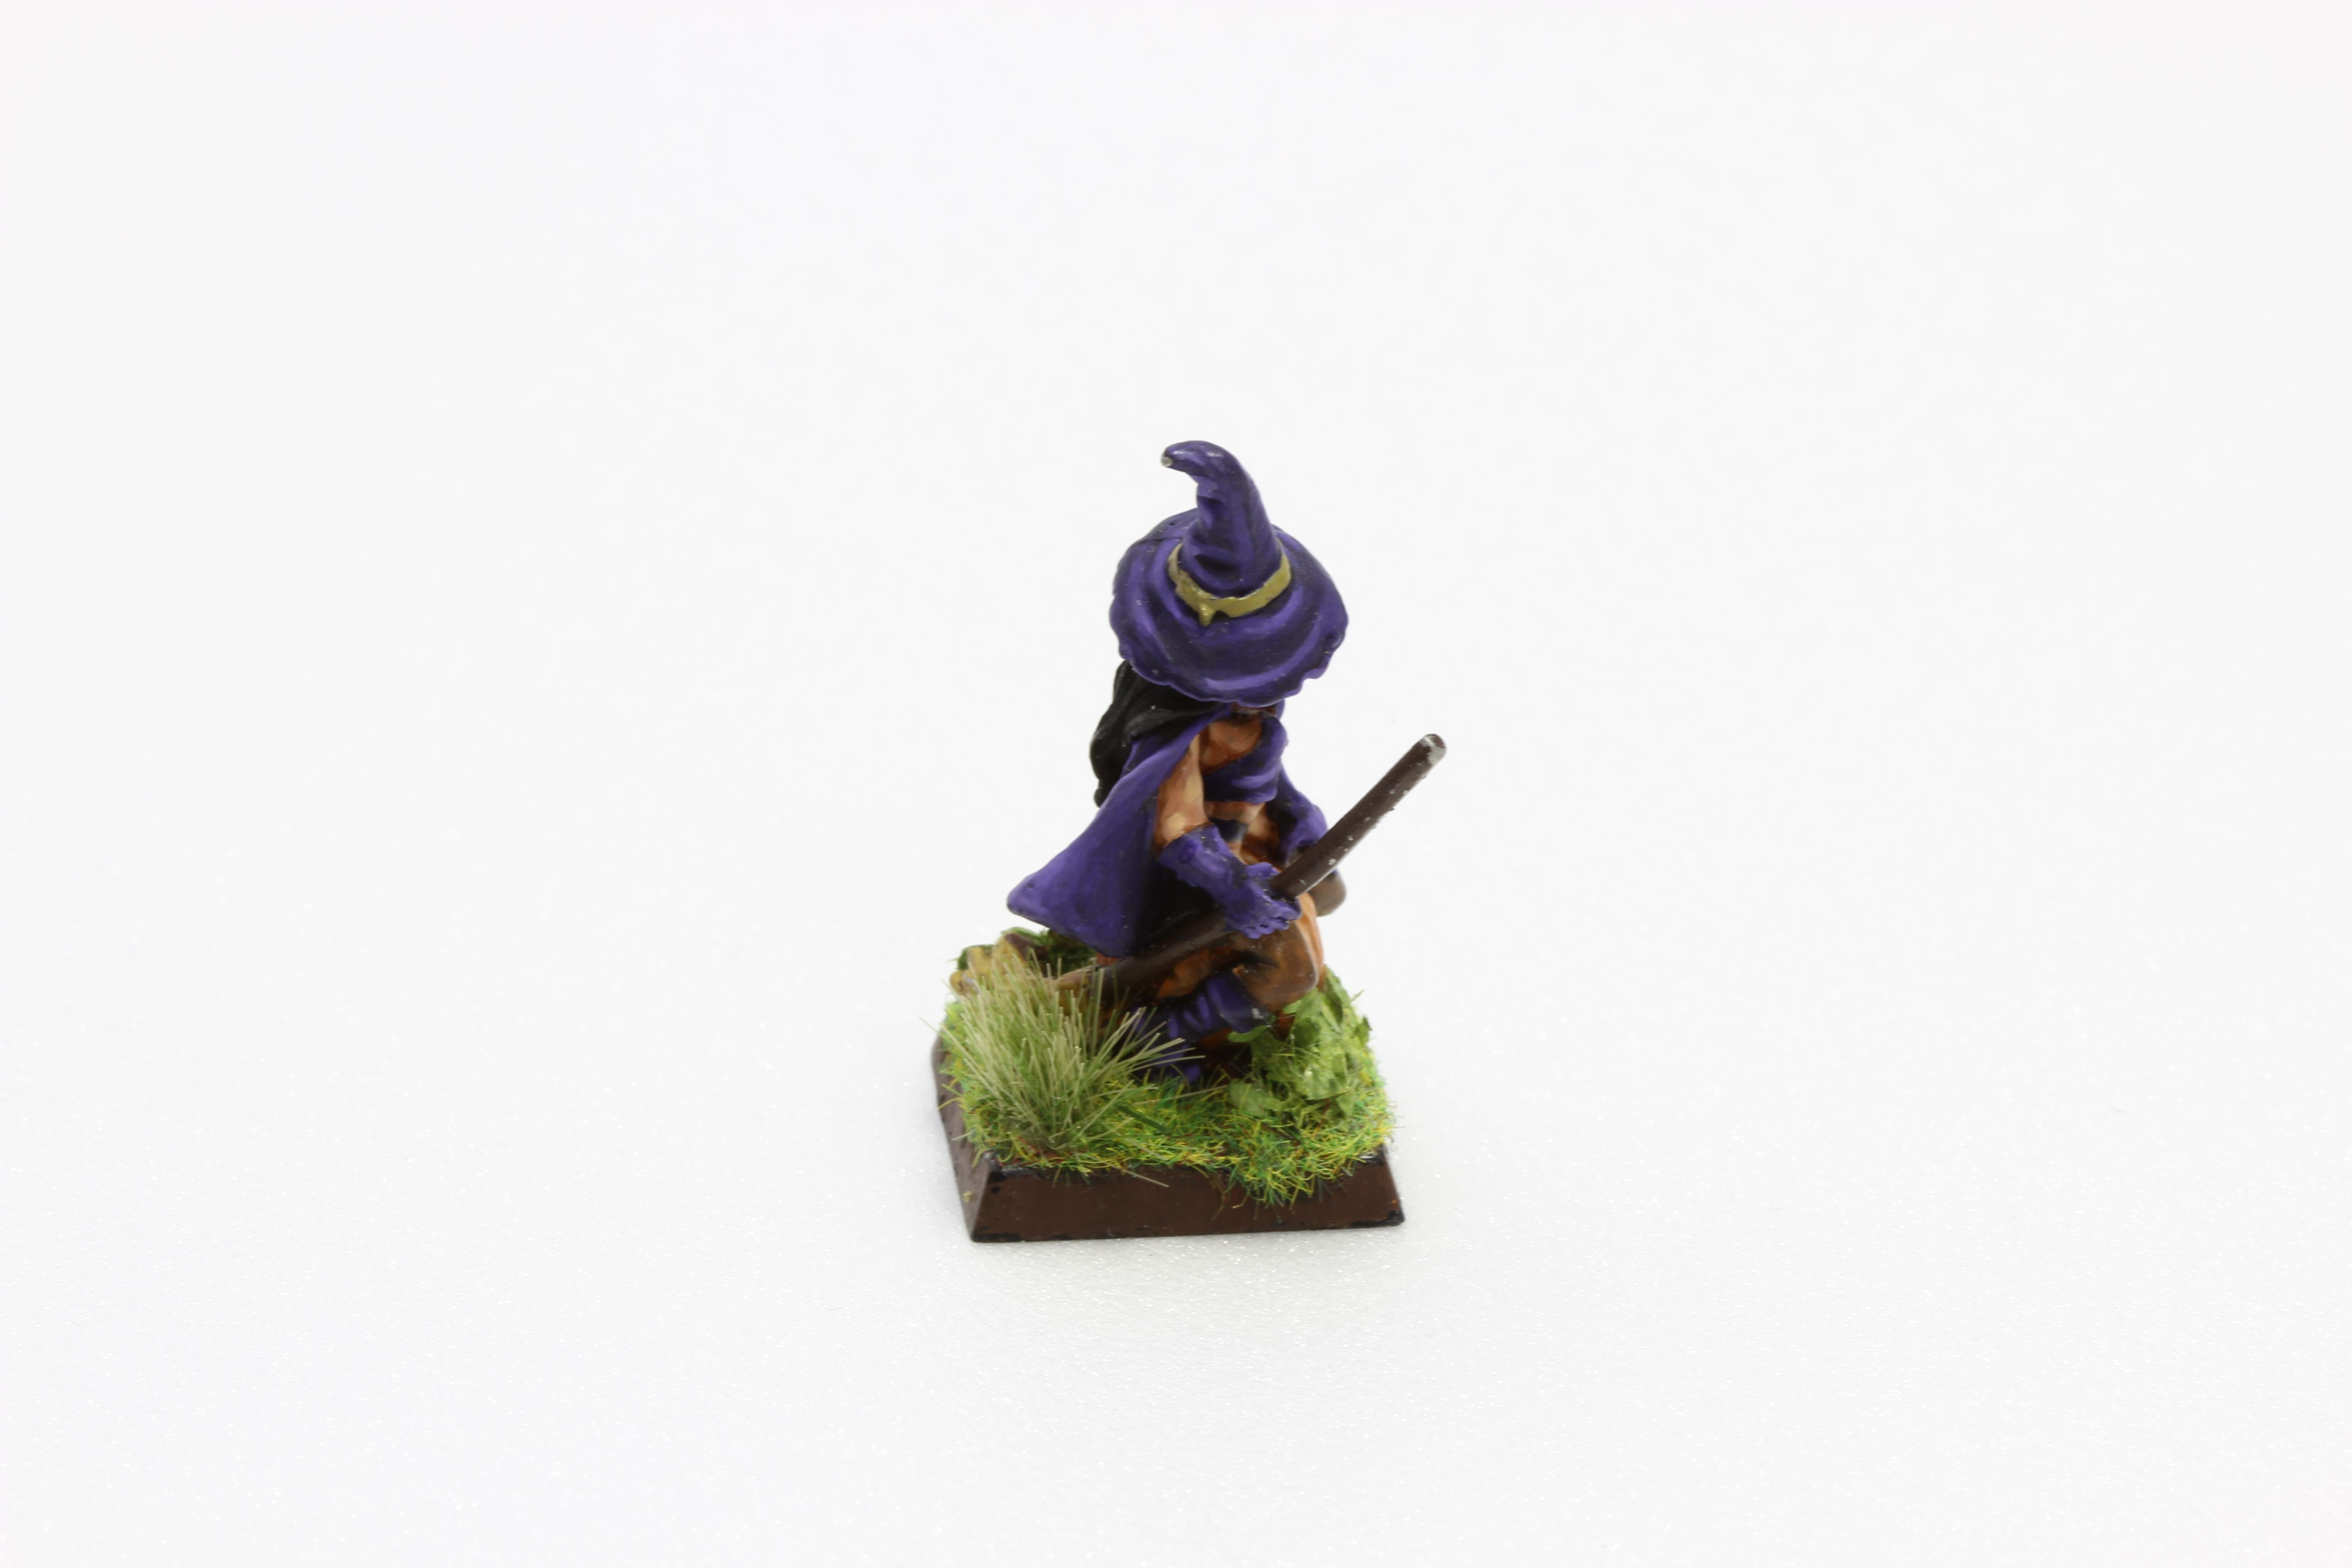 Convertion, Girl, Girls, Mage, Sex, Sexy, Sorceresses, Warhammer Fantasy, Witch, Woman